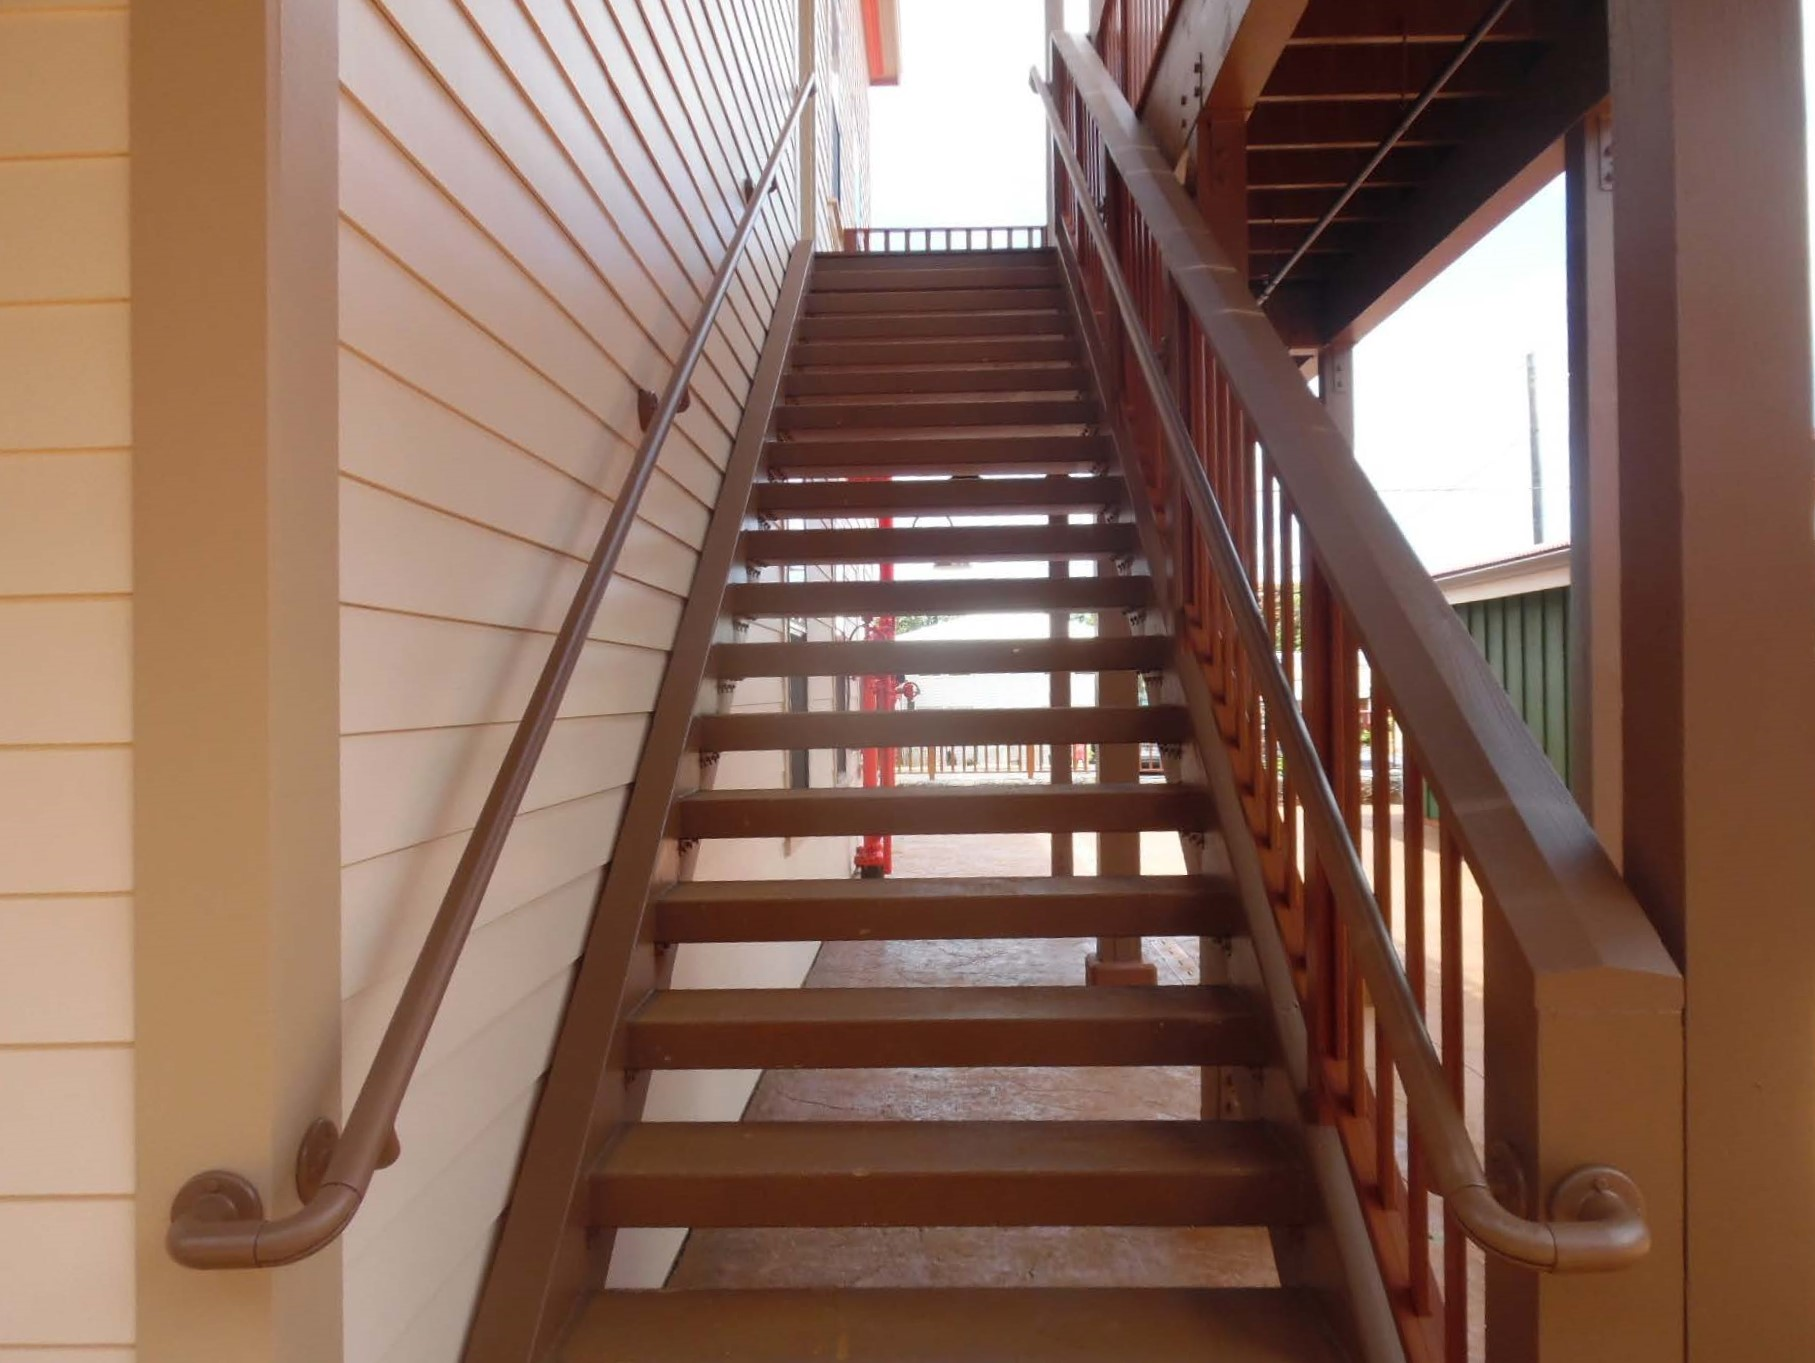 ADA compliant handrail on stairs